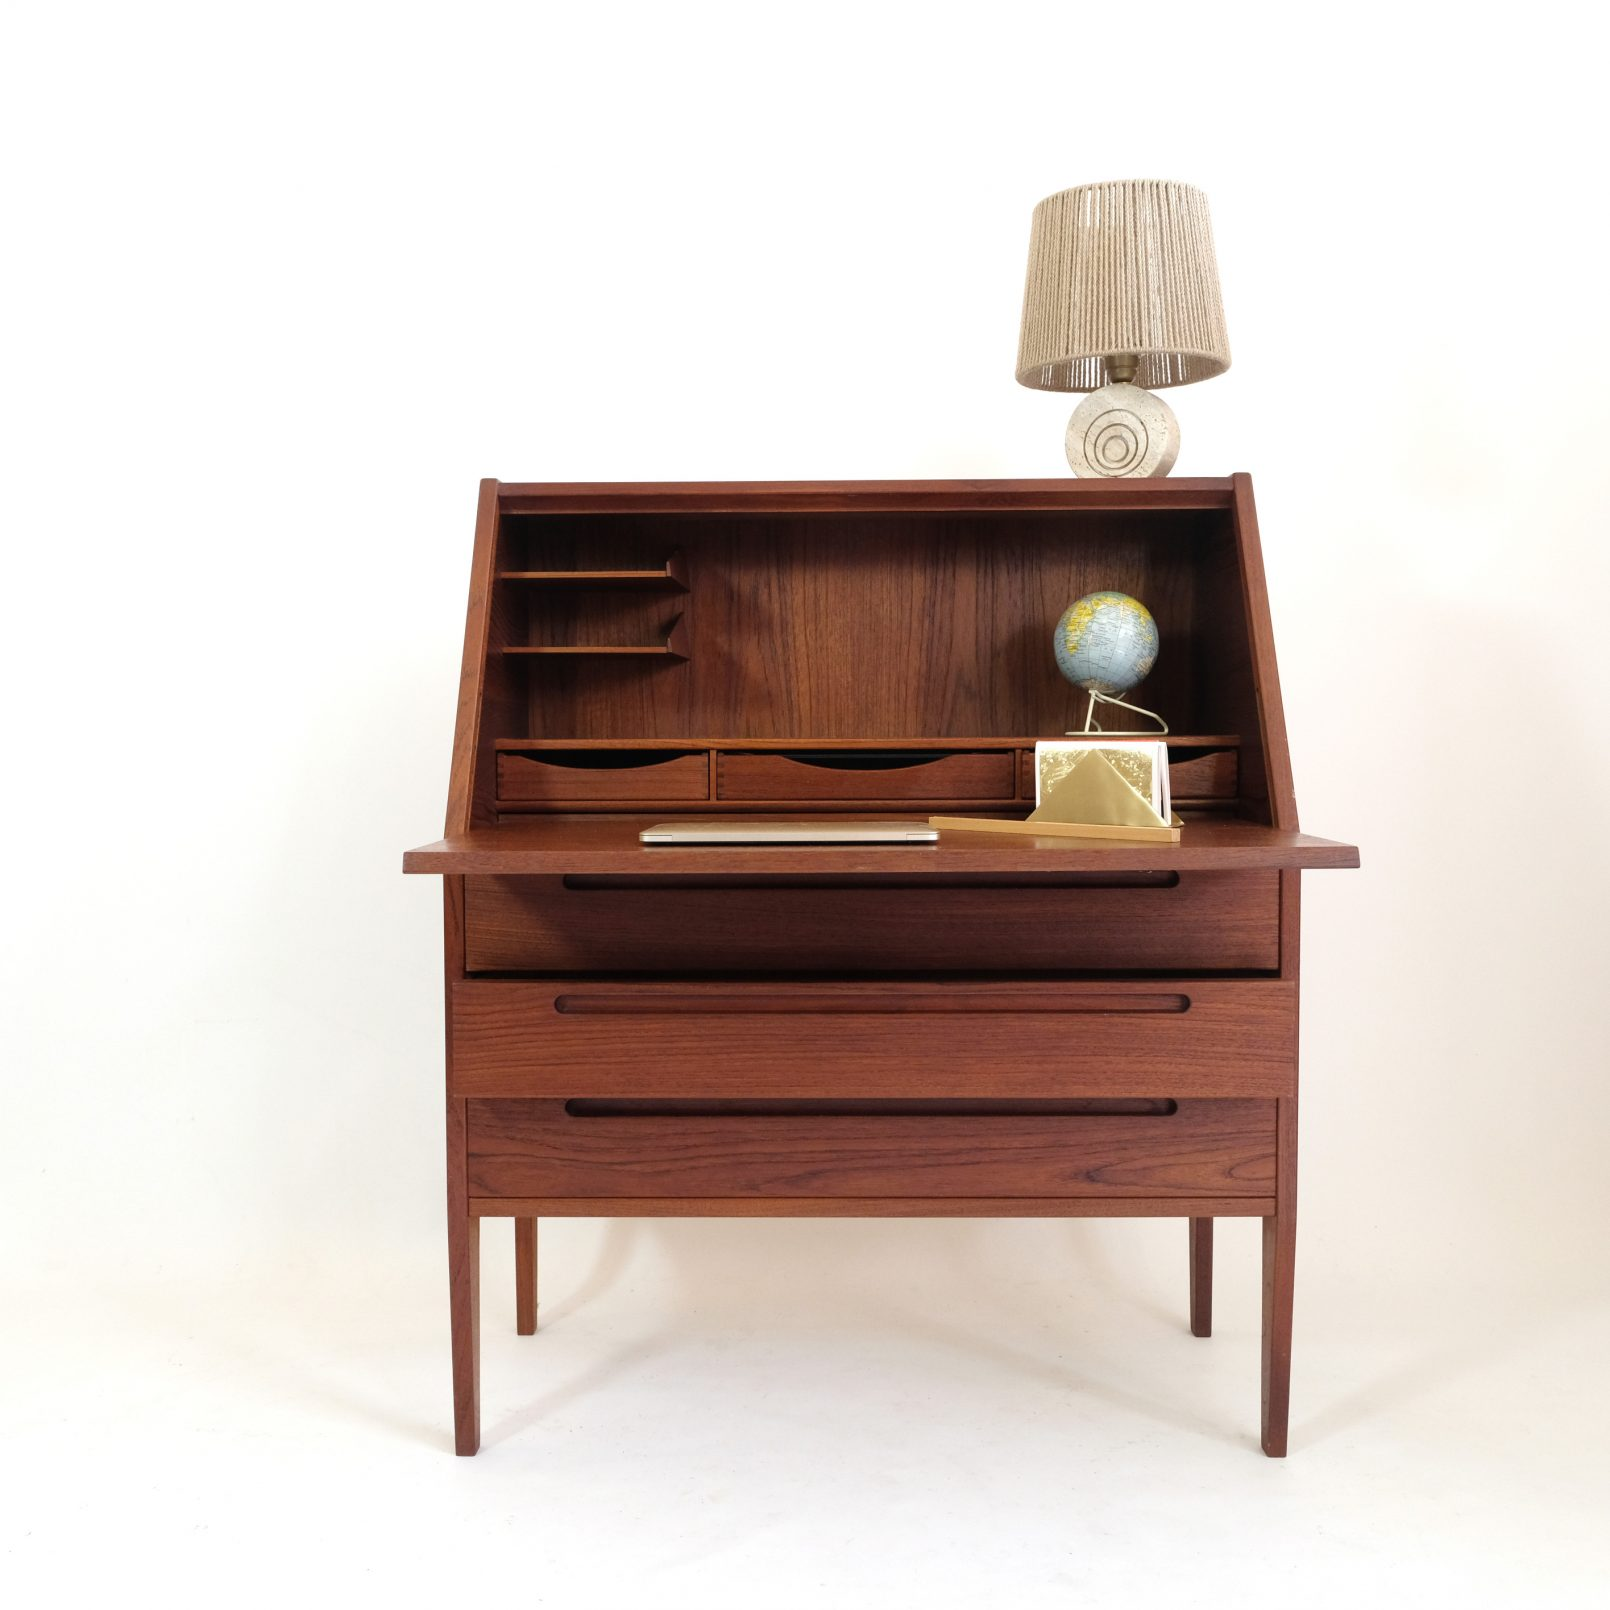 Nils Jonsson, teak secretaire from the sixties, to be restored.